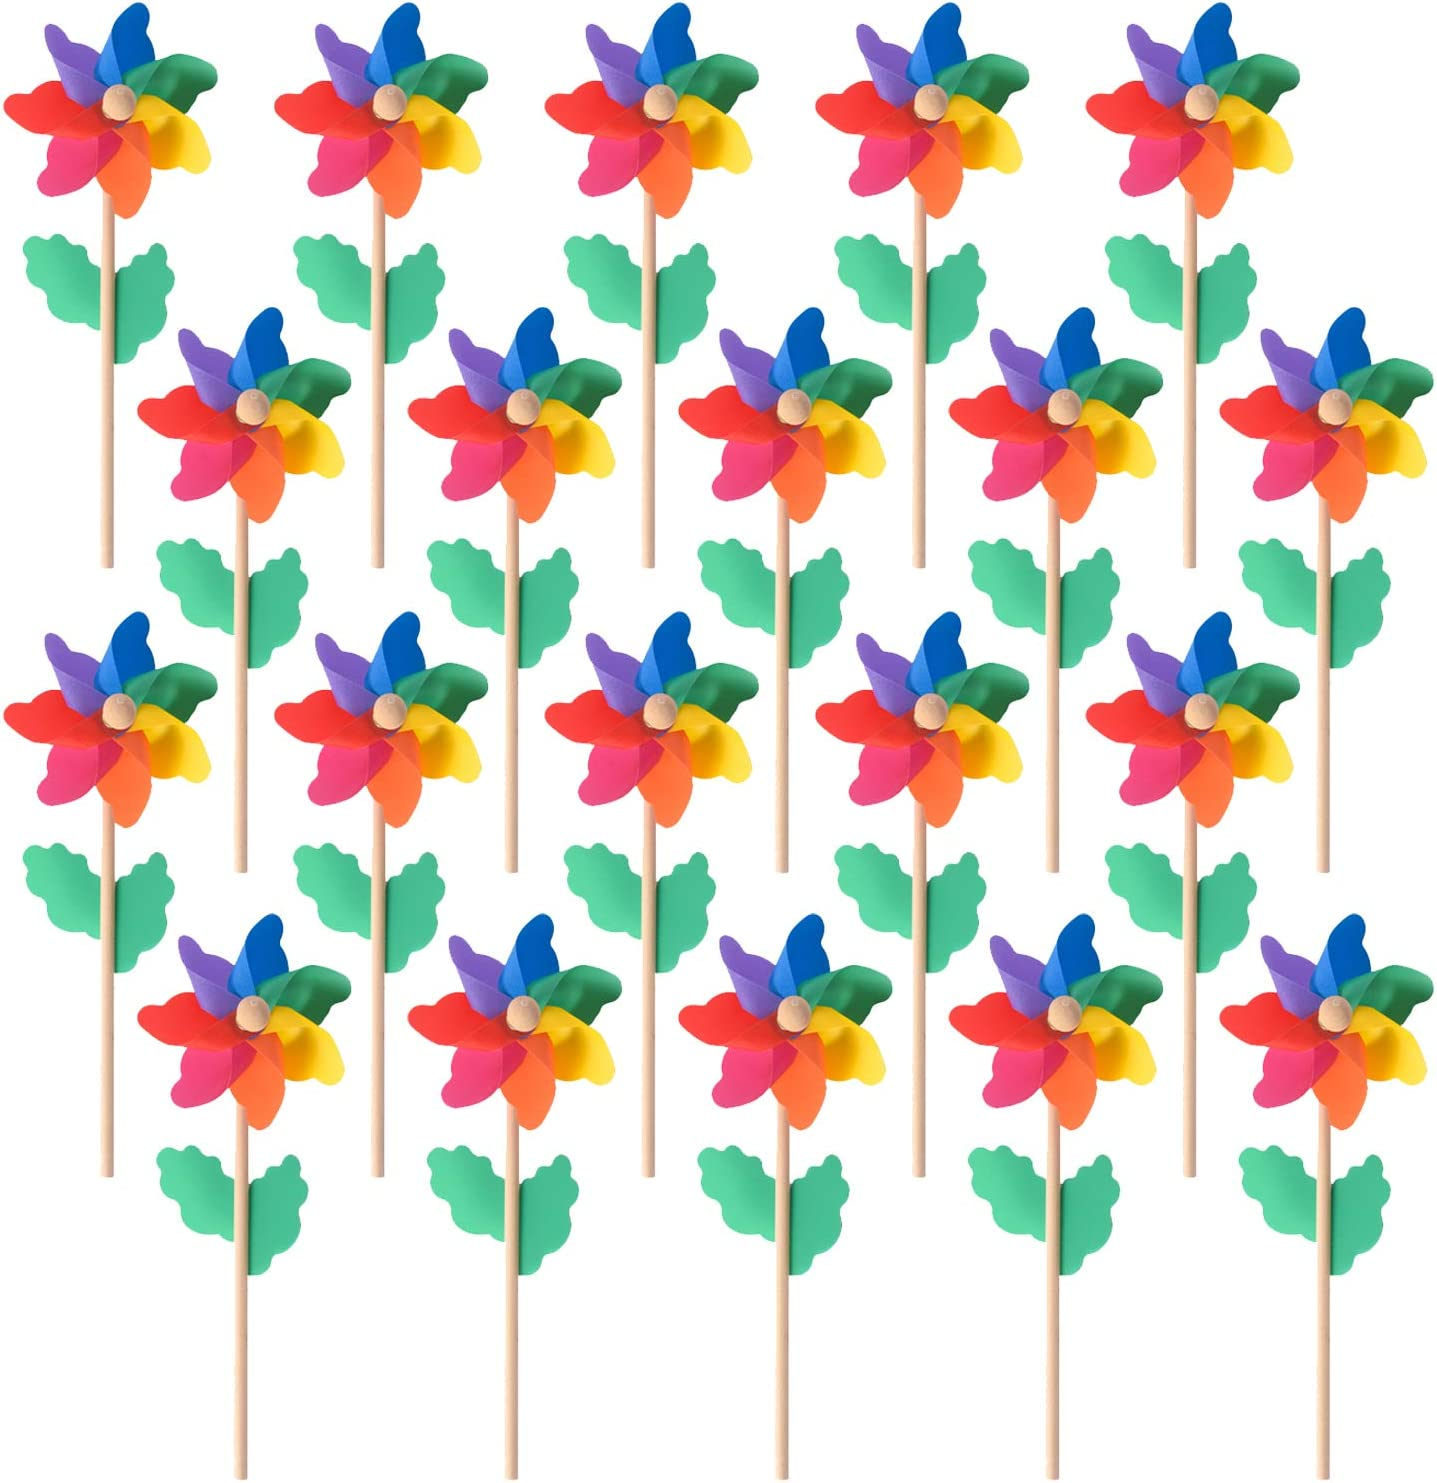 "Jucoan 20 Pack Rainbow Pinwheels with Wooden Stick 4.7"" Plastic Windmill Set Wind Spinner for Garden Party, Outdoor, Yard Decoration, No Assemble"